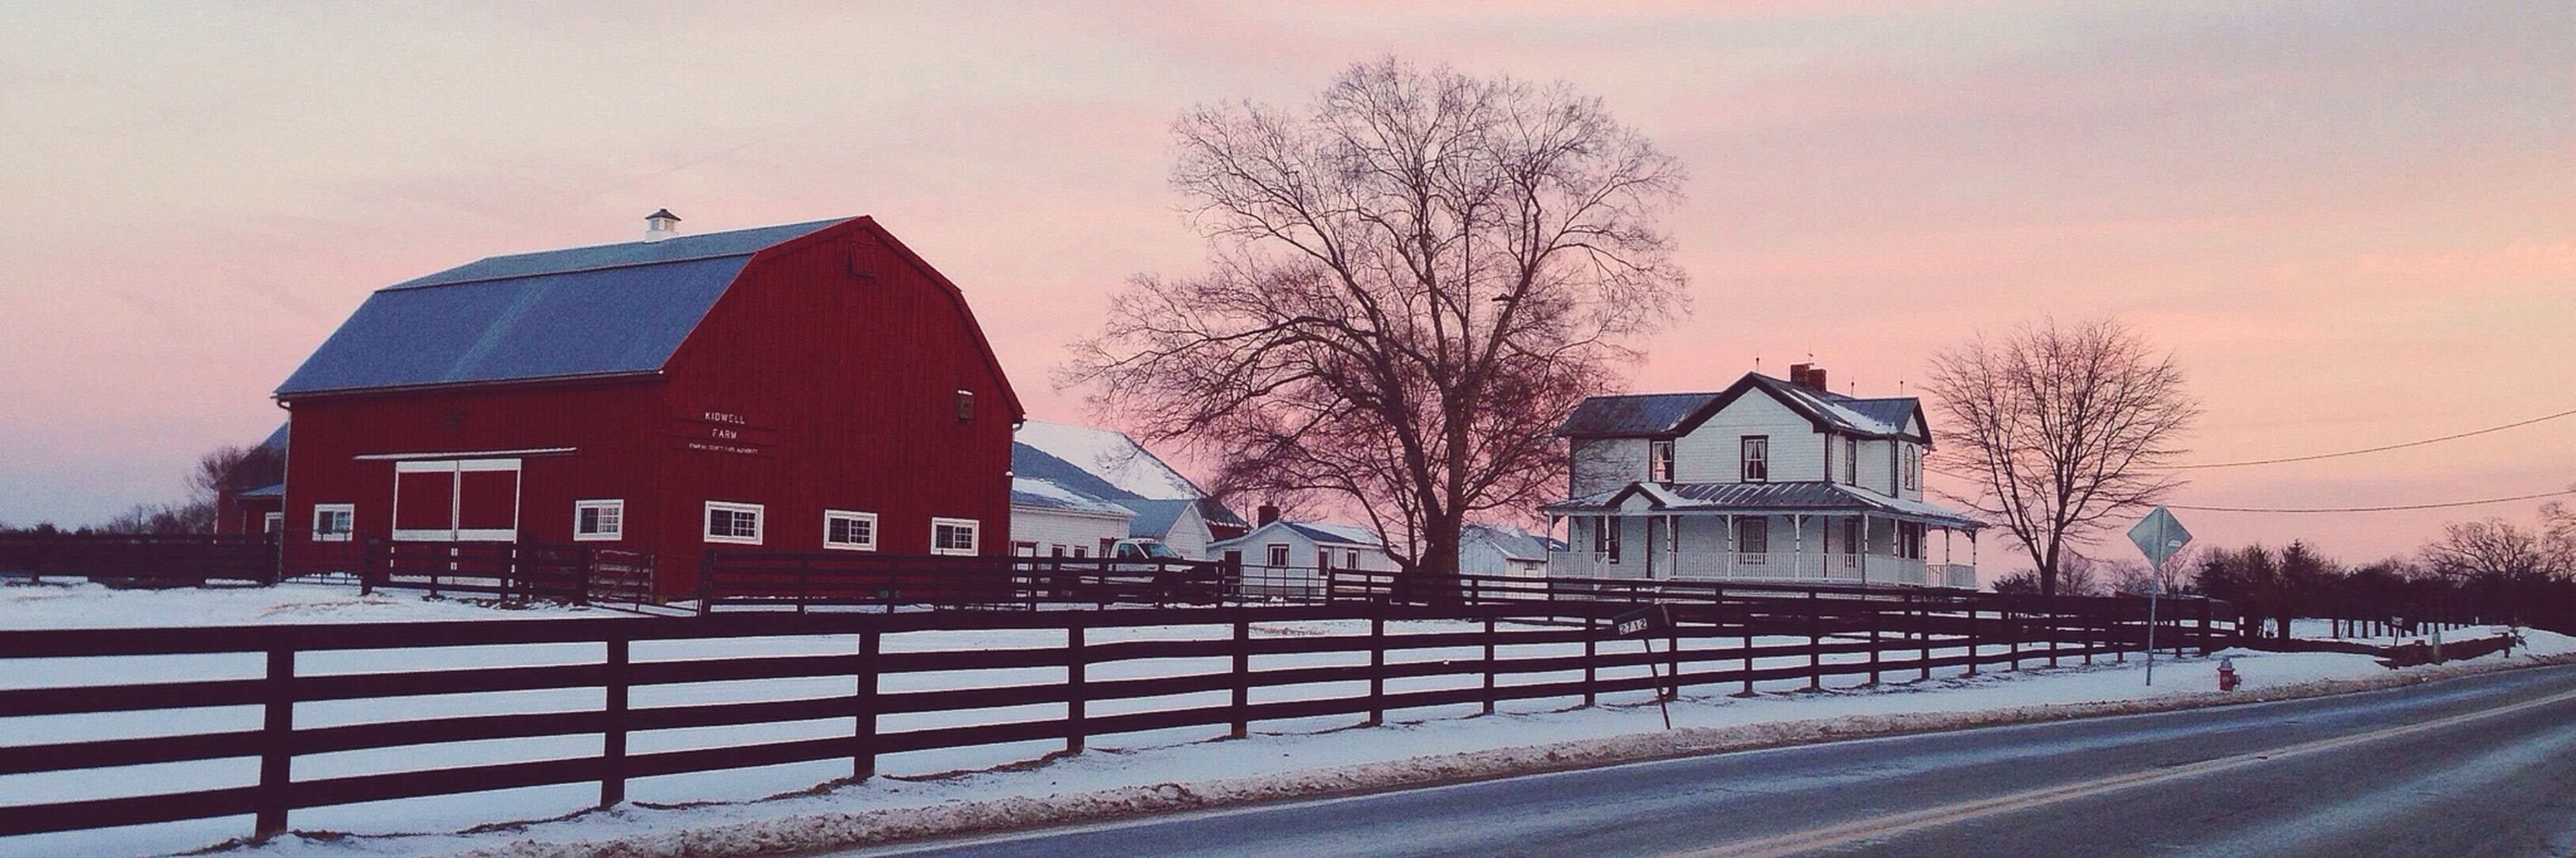 snow, winter, bare tree, cold temperature, building exterior, architecture, built structure, season, sunset, sky, weather, tree, covering, house, transportation, road, orange color, nature, street, outdoors